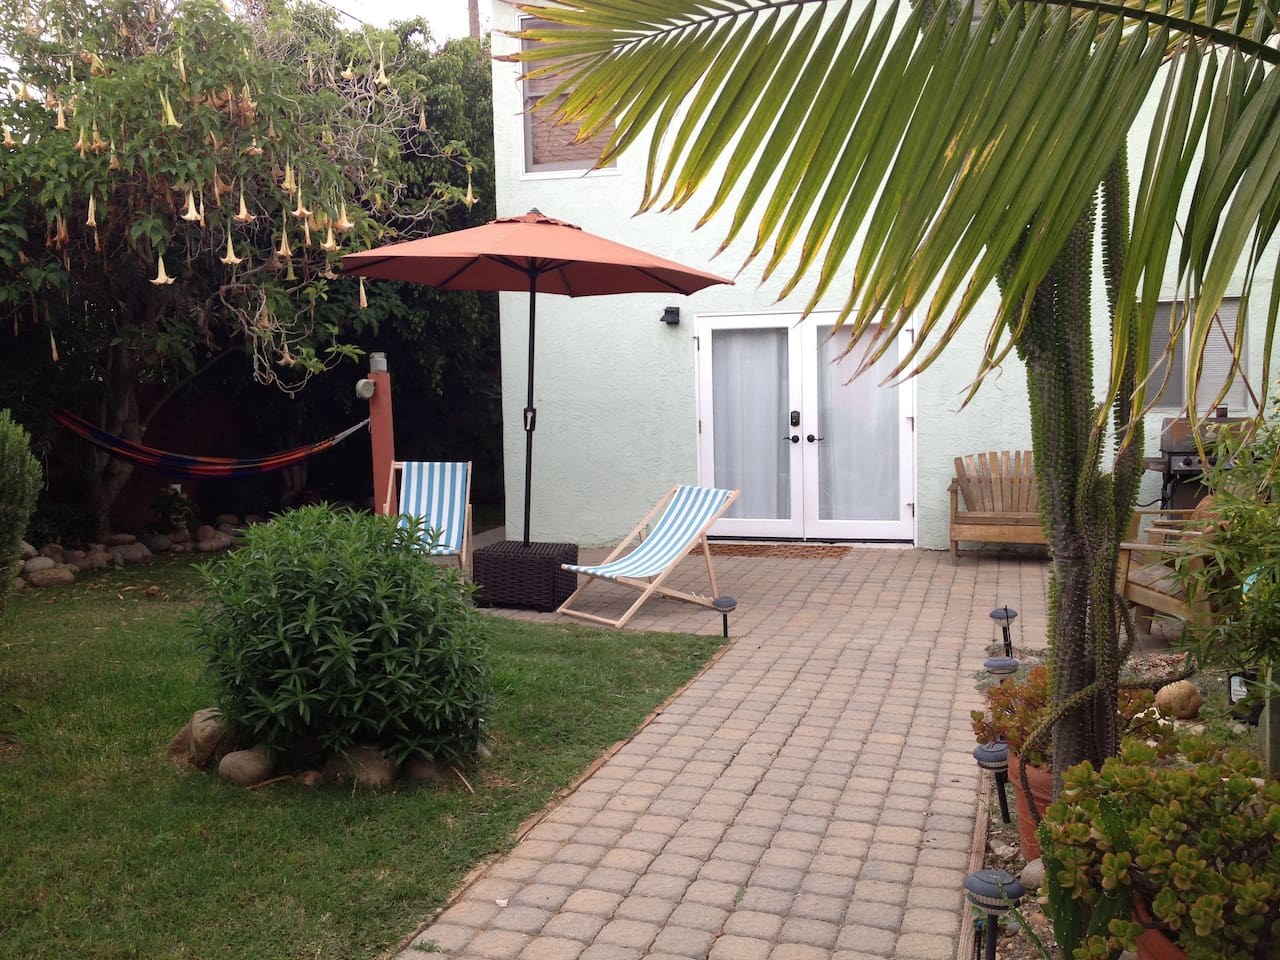 relax in the hammock or sip a frosty beverage underneath the patio umbrella